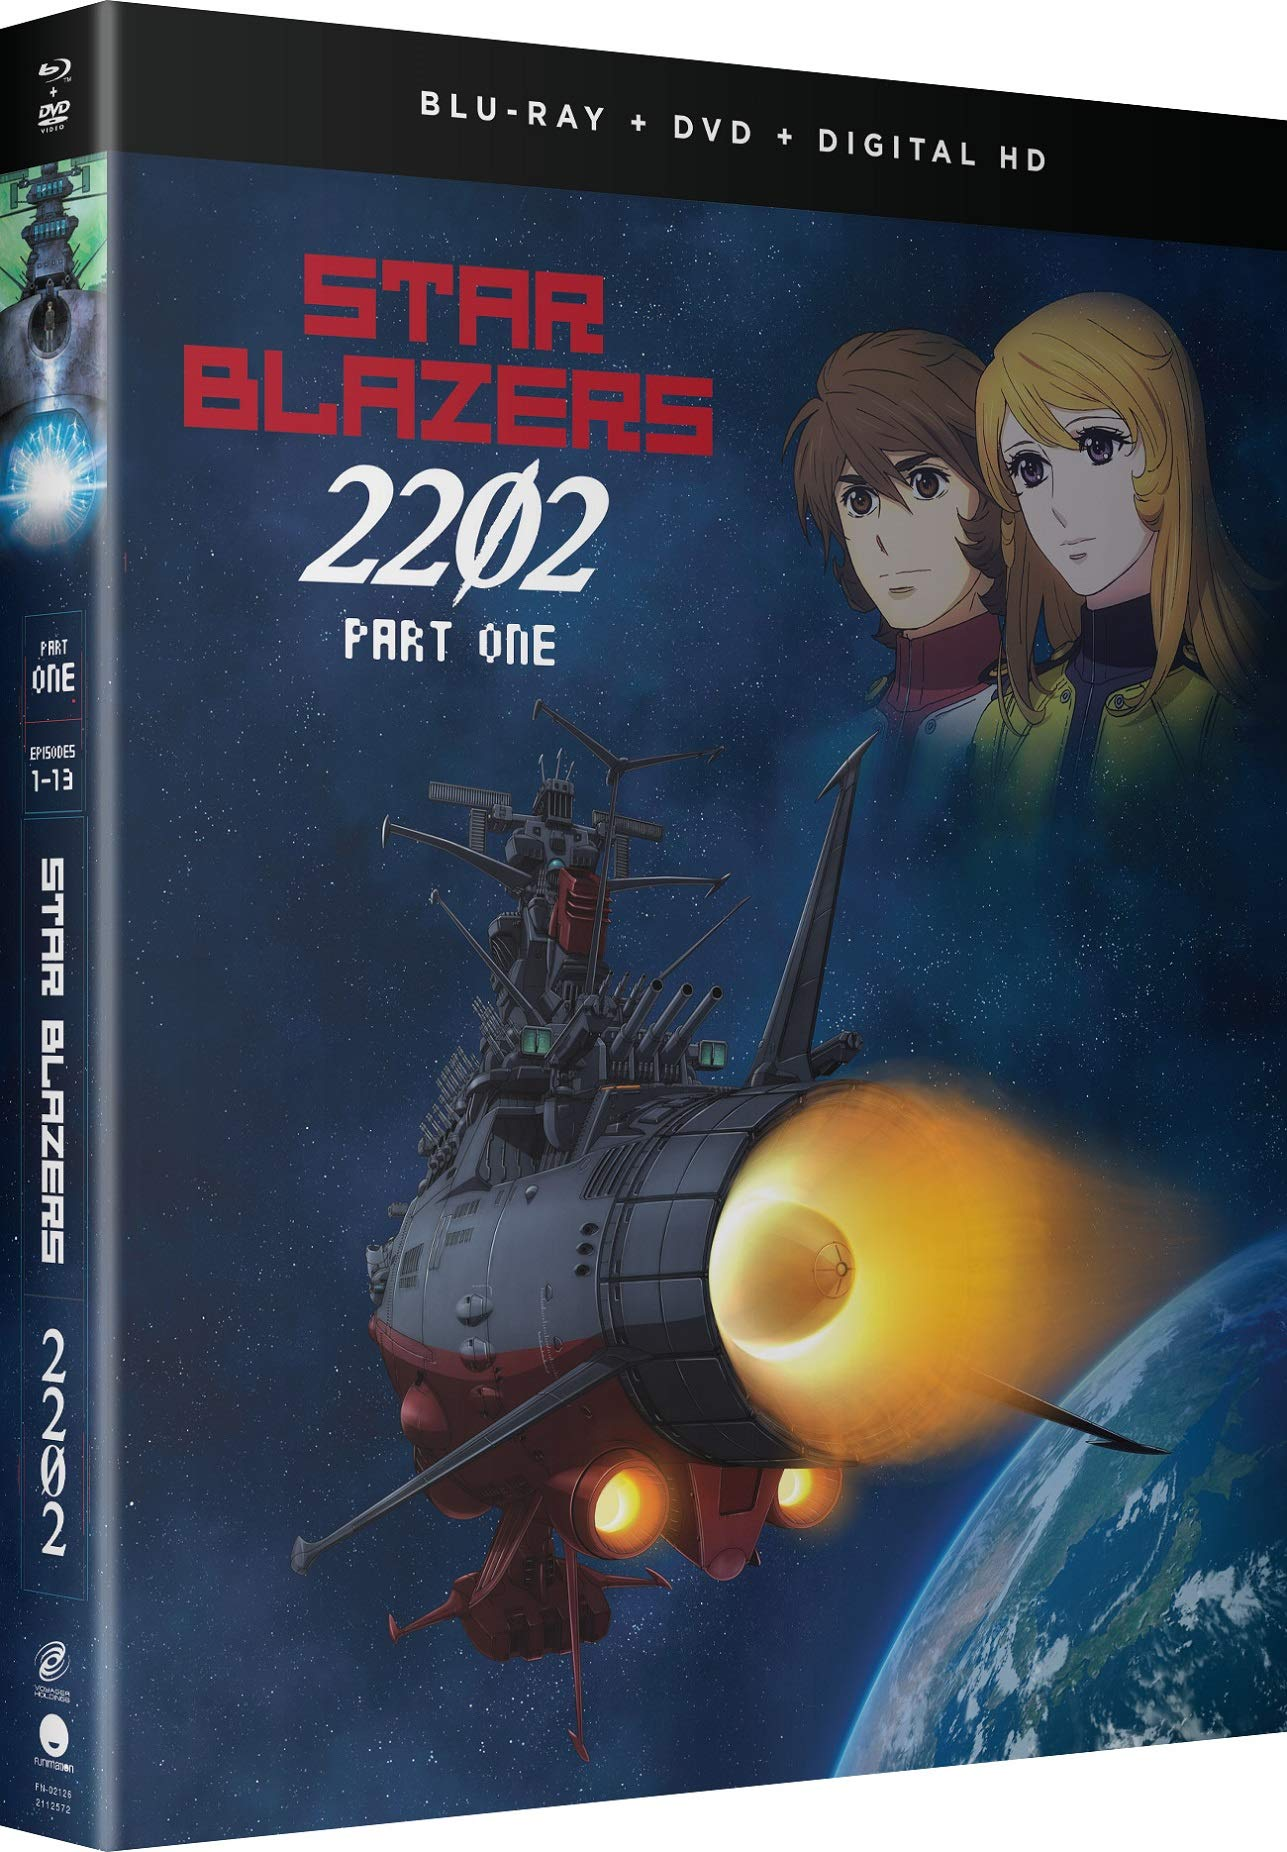 Blu-ray : Star Blazers: Space Battleship Yamato 2202 - Part One (With DVD, Boxed Set, Snap Case, Slipsleeve Packaging, Digital Copy)